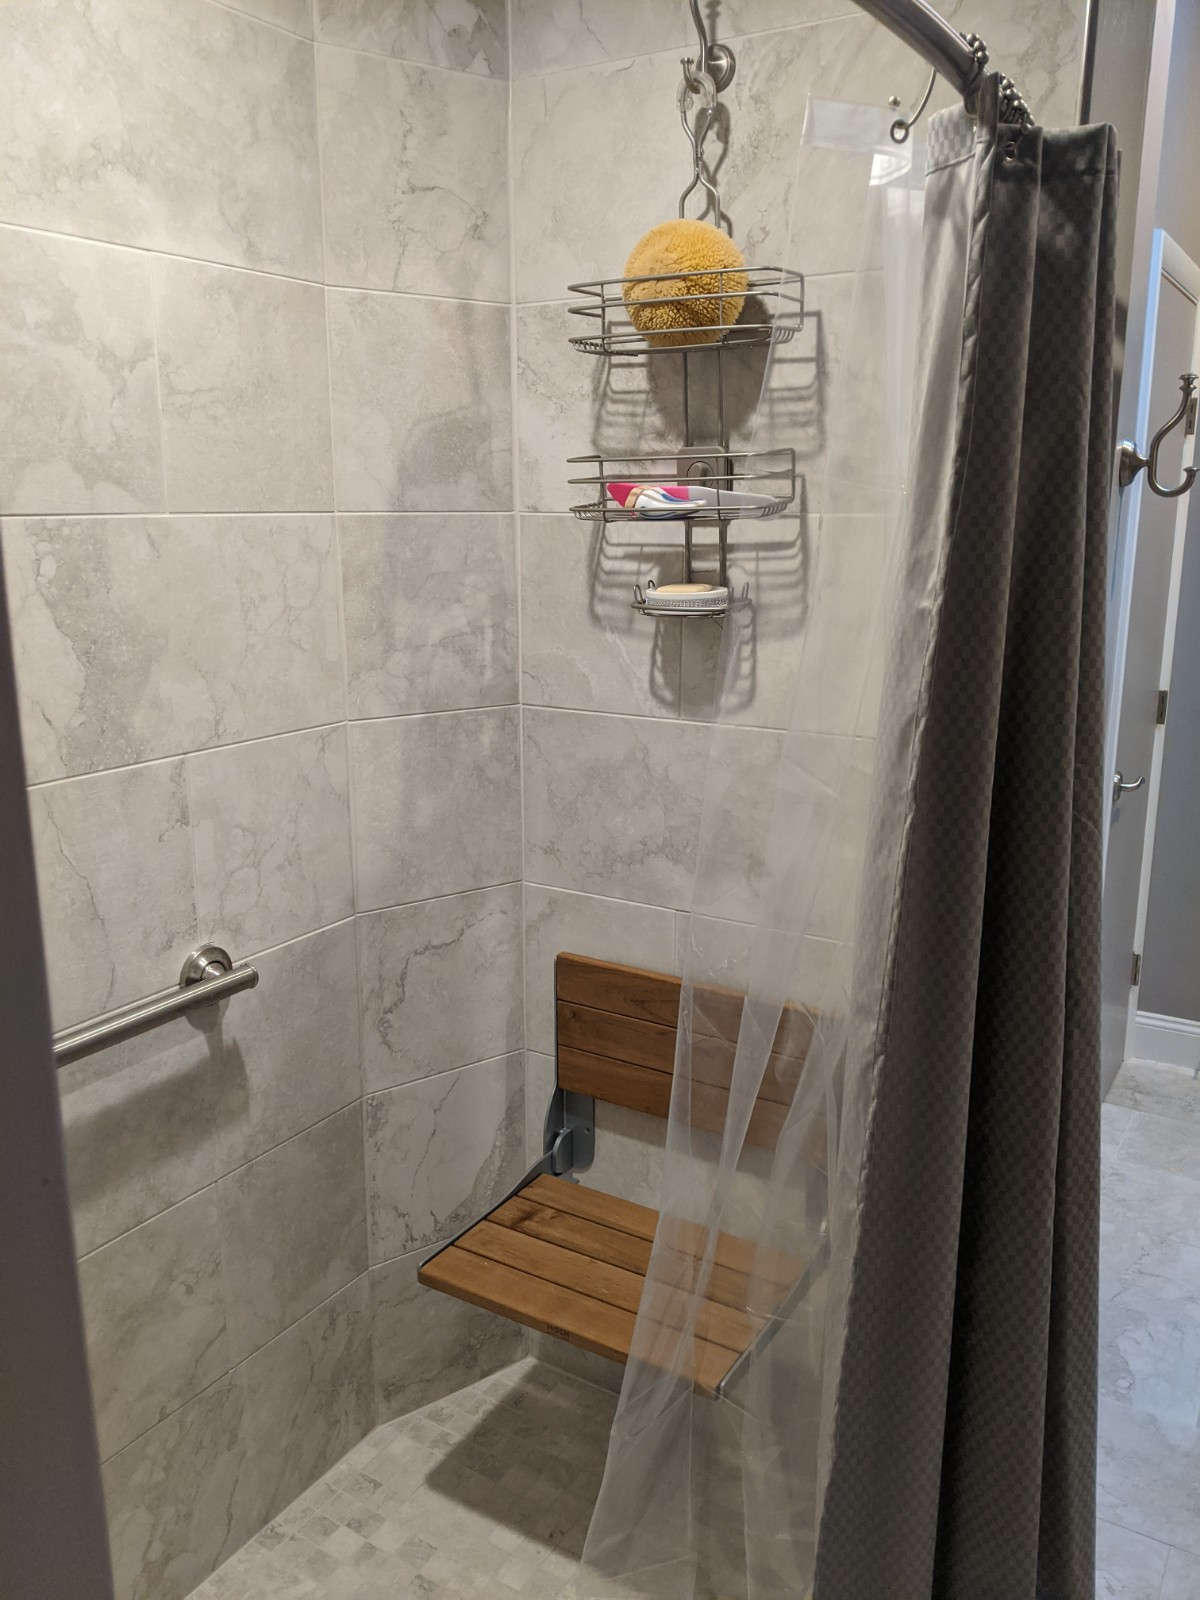 Another view of the tile shower with the pull down seat